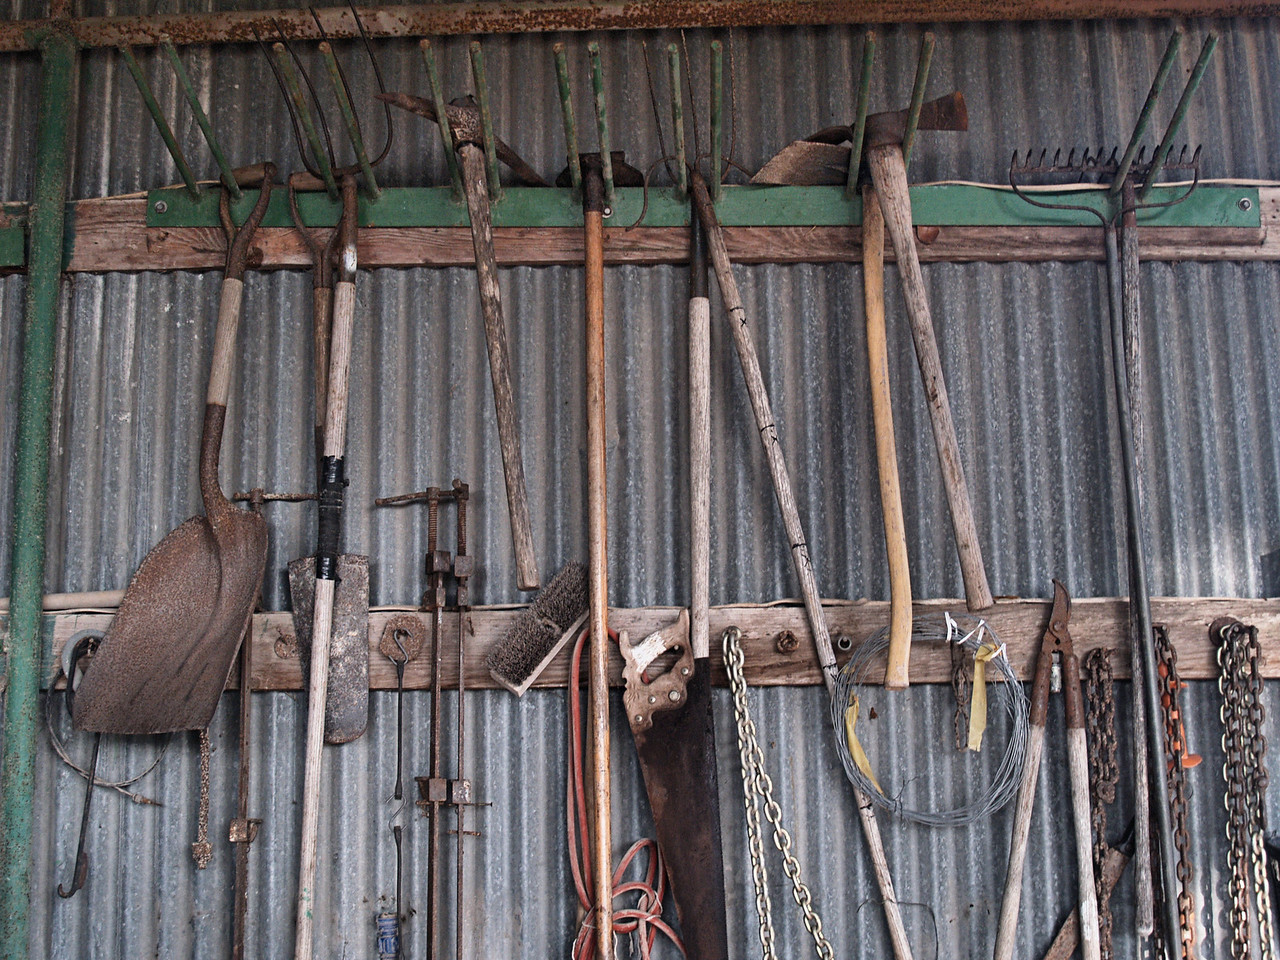 OLYMPUS DIGITAL CAMERA--Ranch tools hanging in the shed.